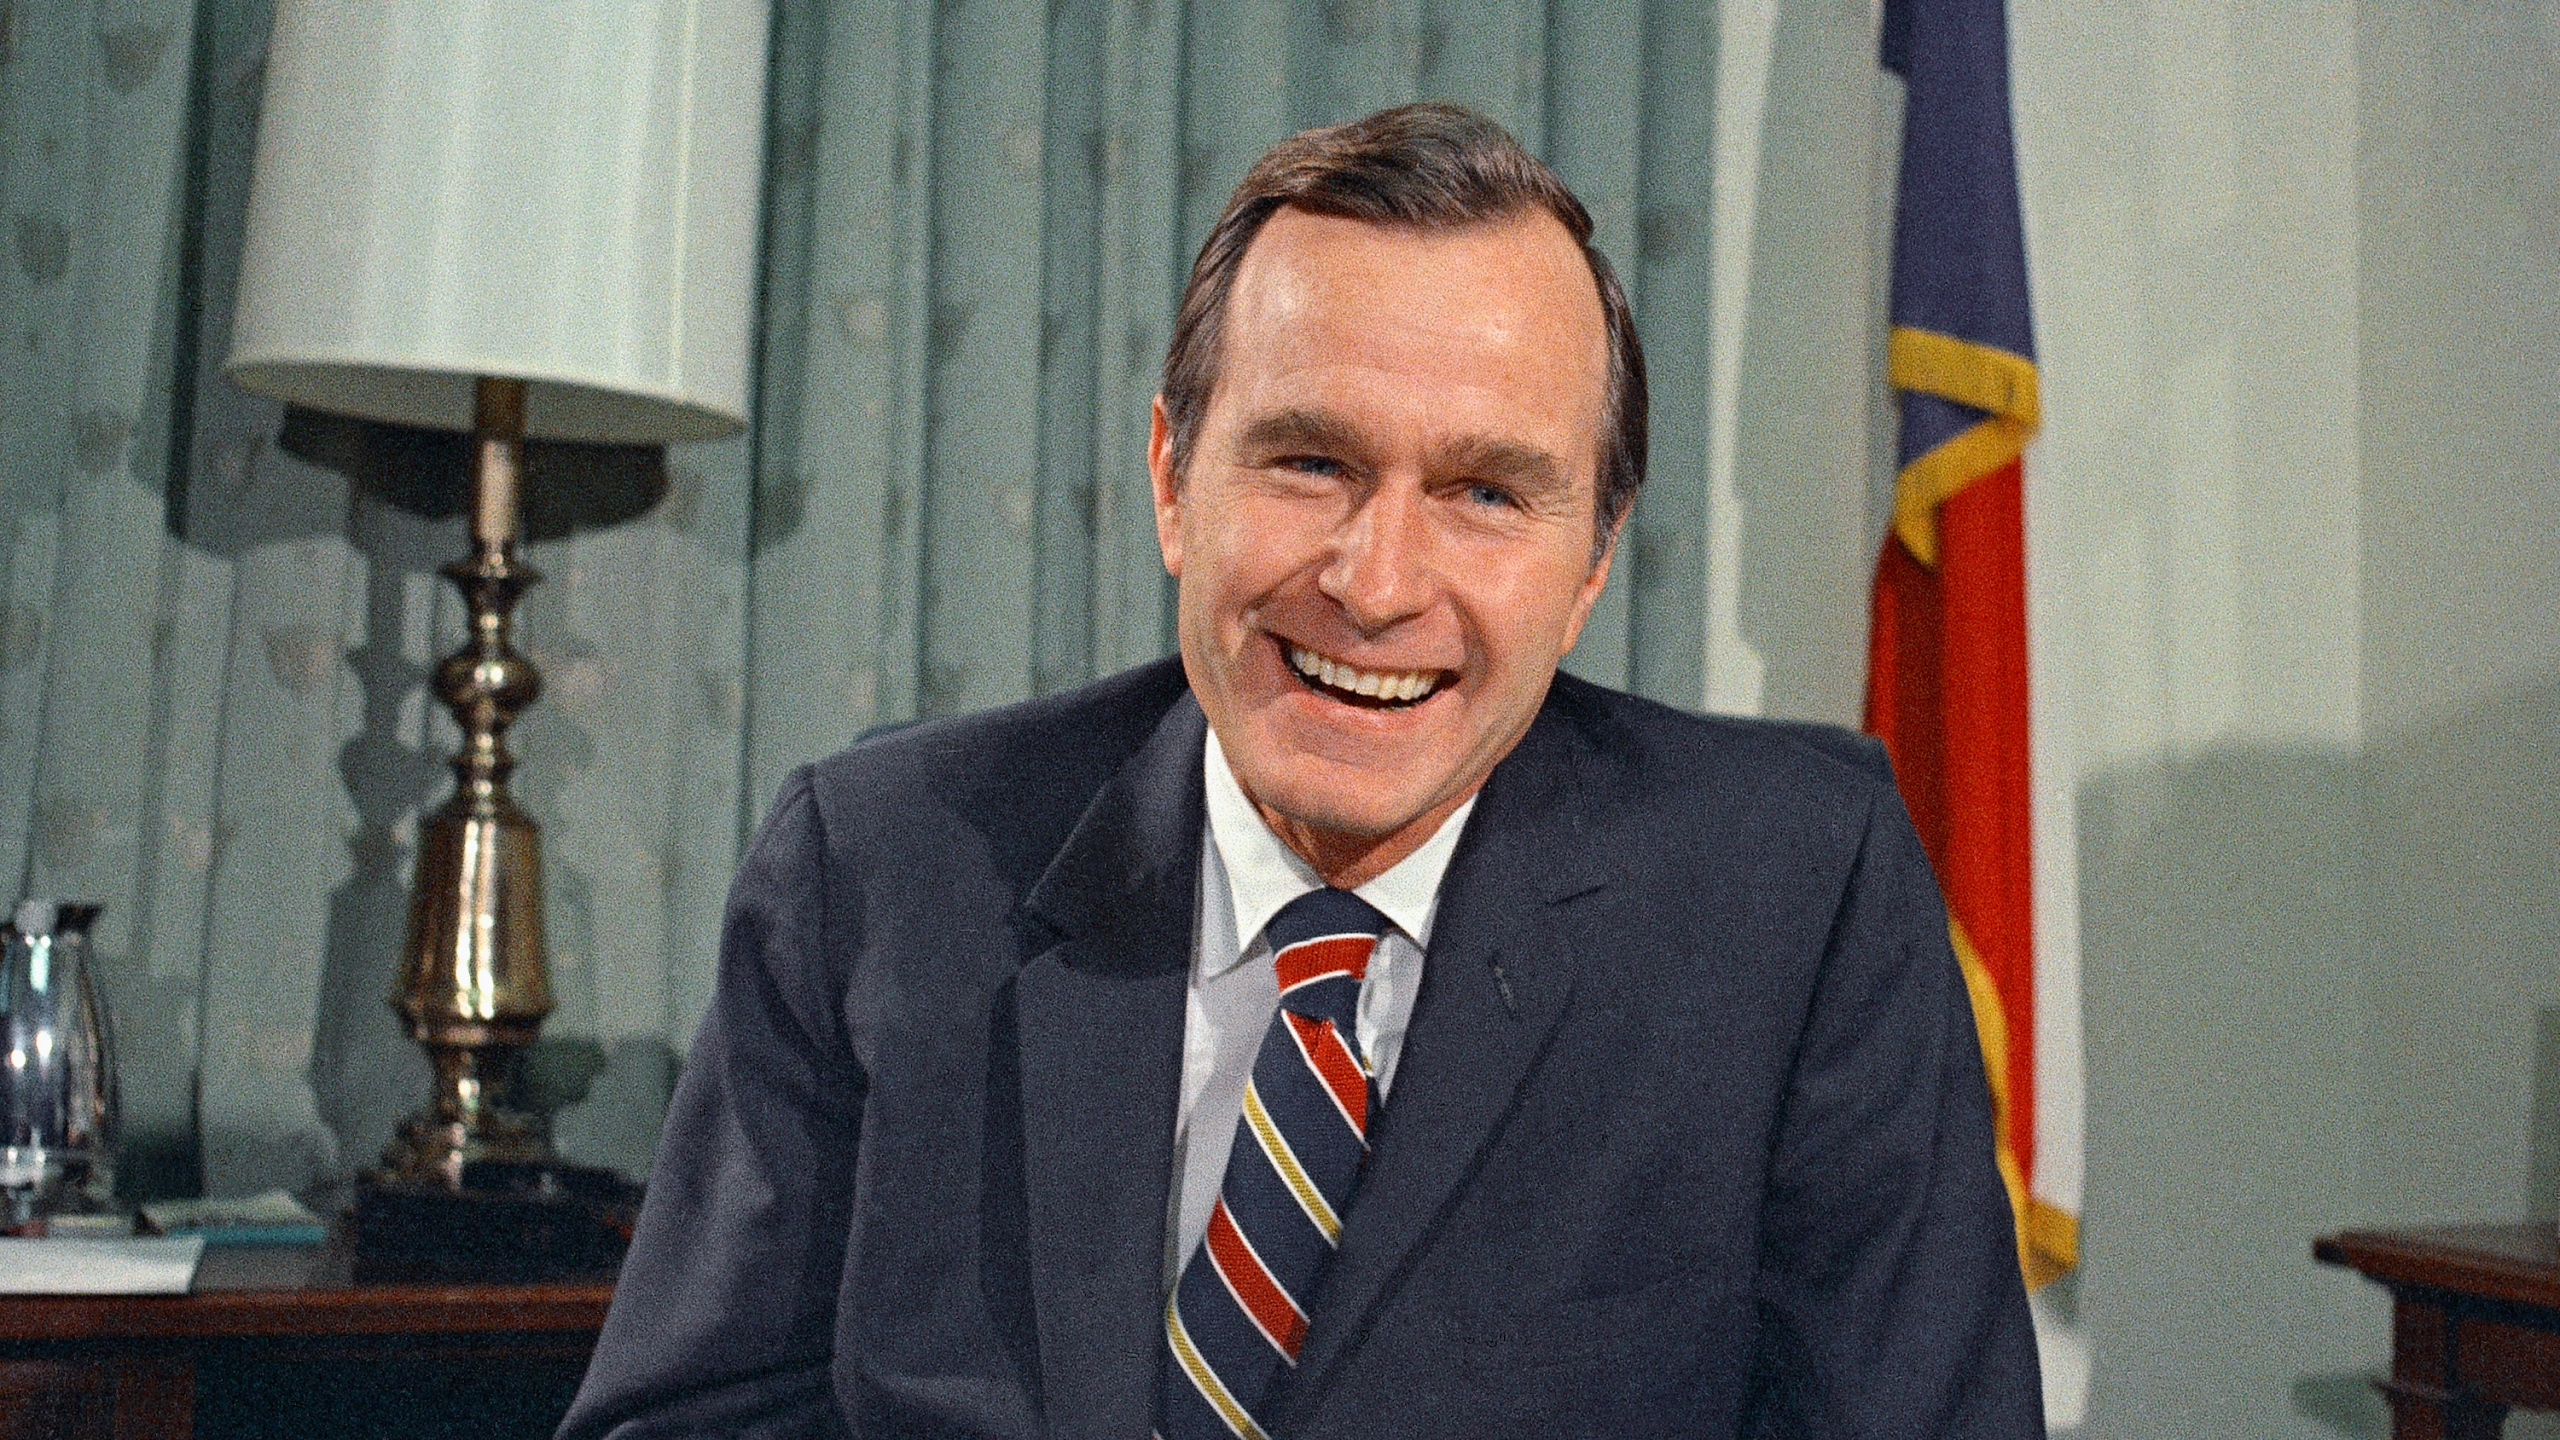 Obit_George_HW_Bush_18774-159532.jpg01425746